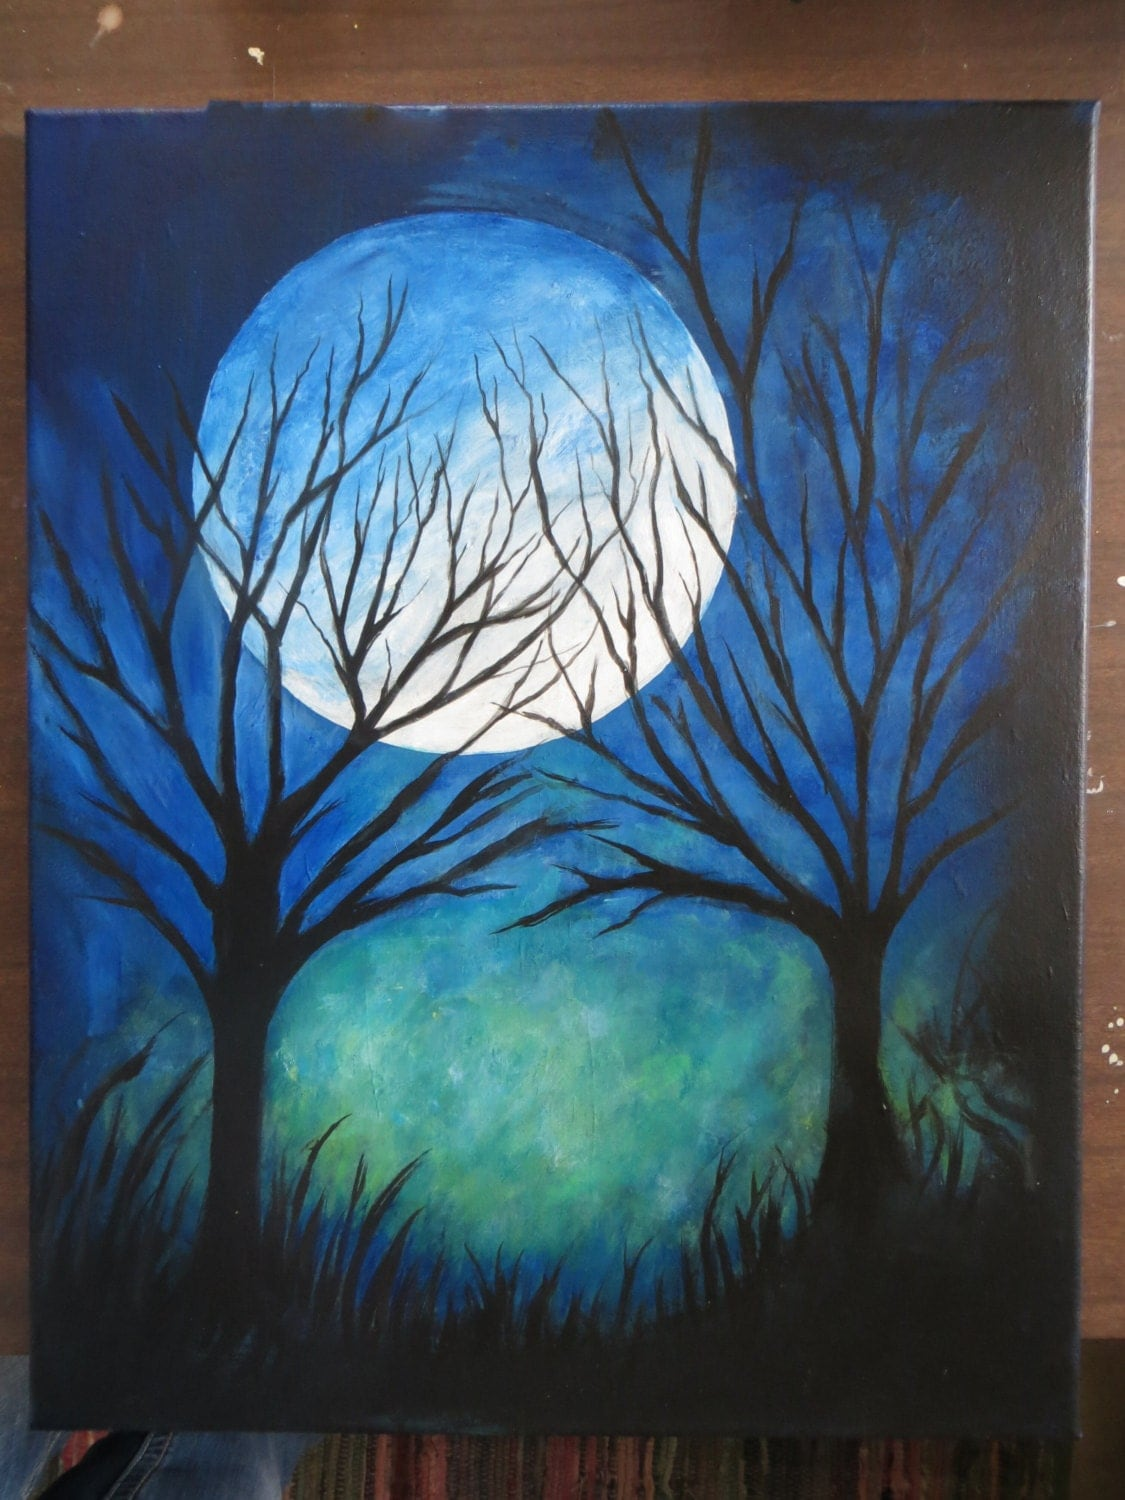 Abstract Art Modern Art Night Time Moon and Trees Painting 16